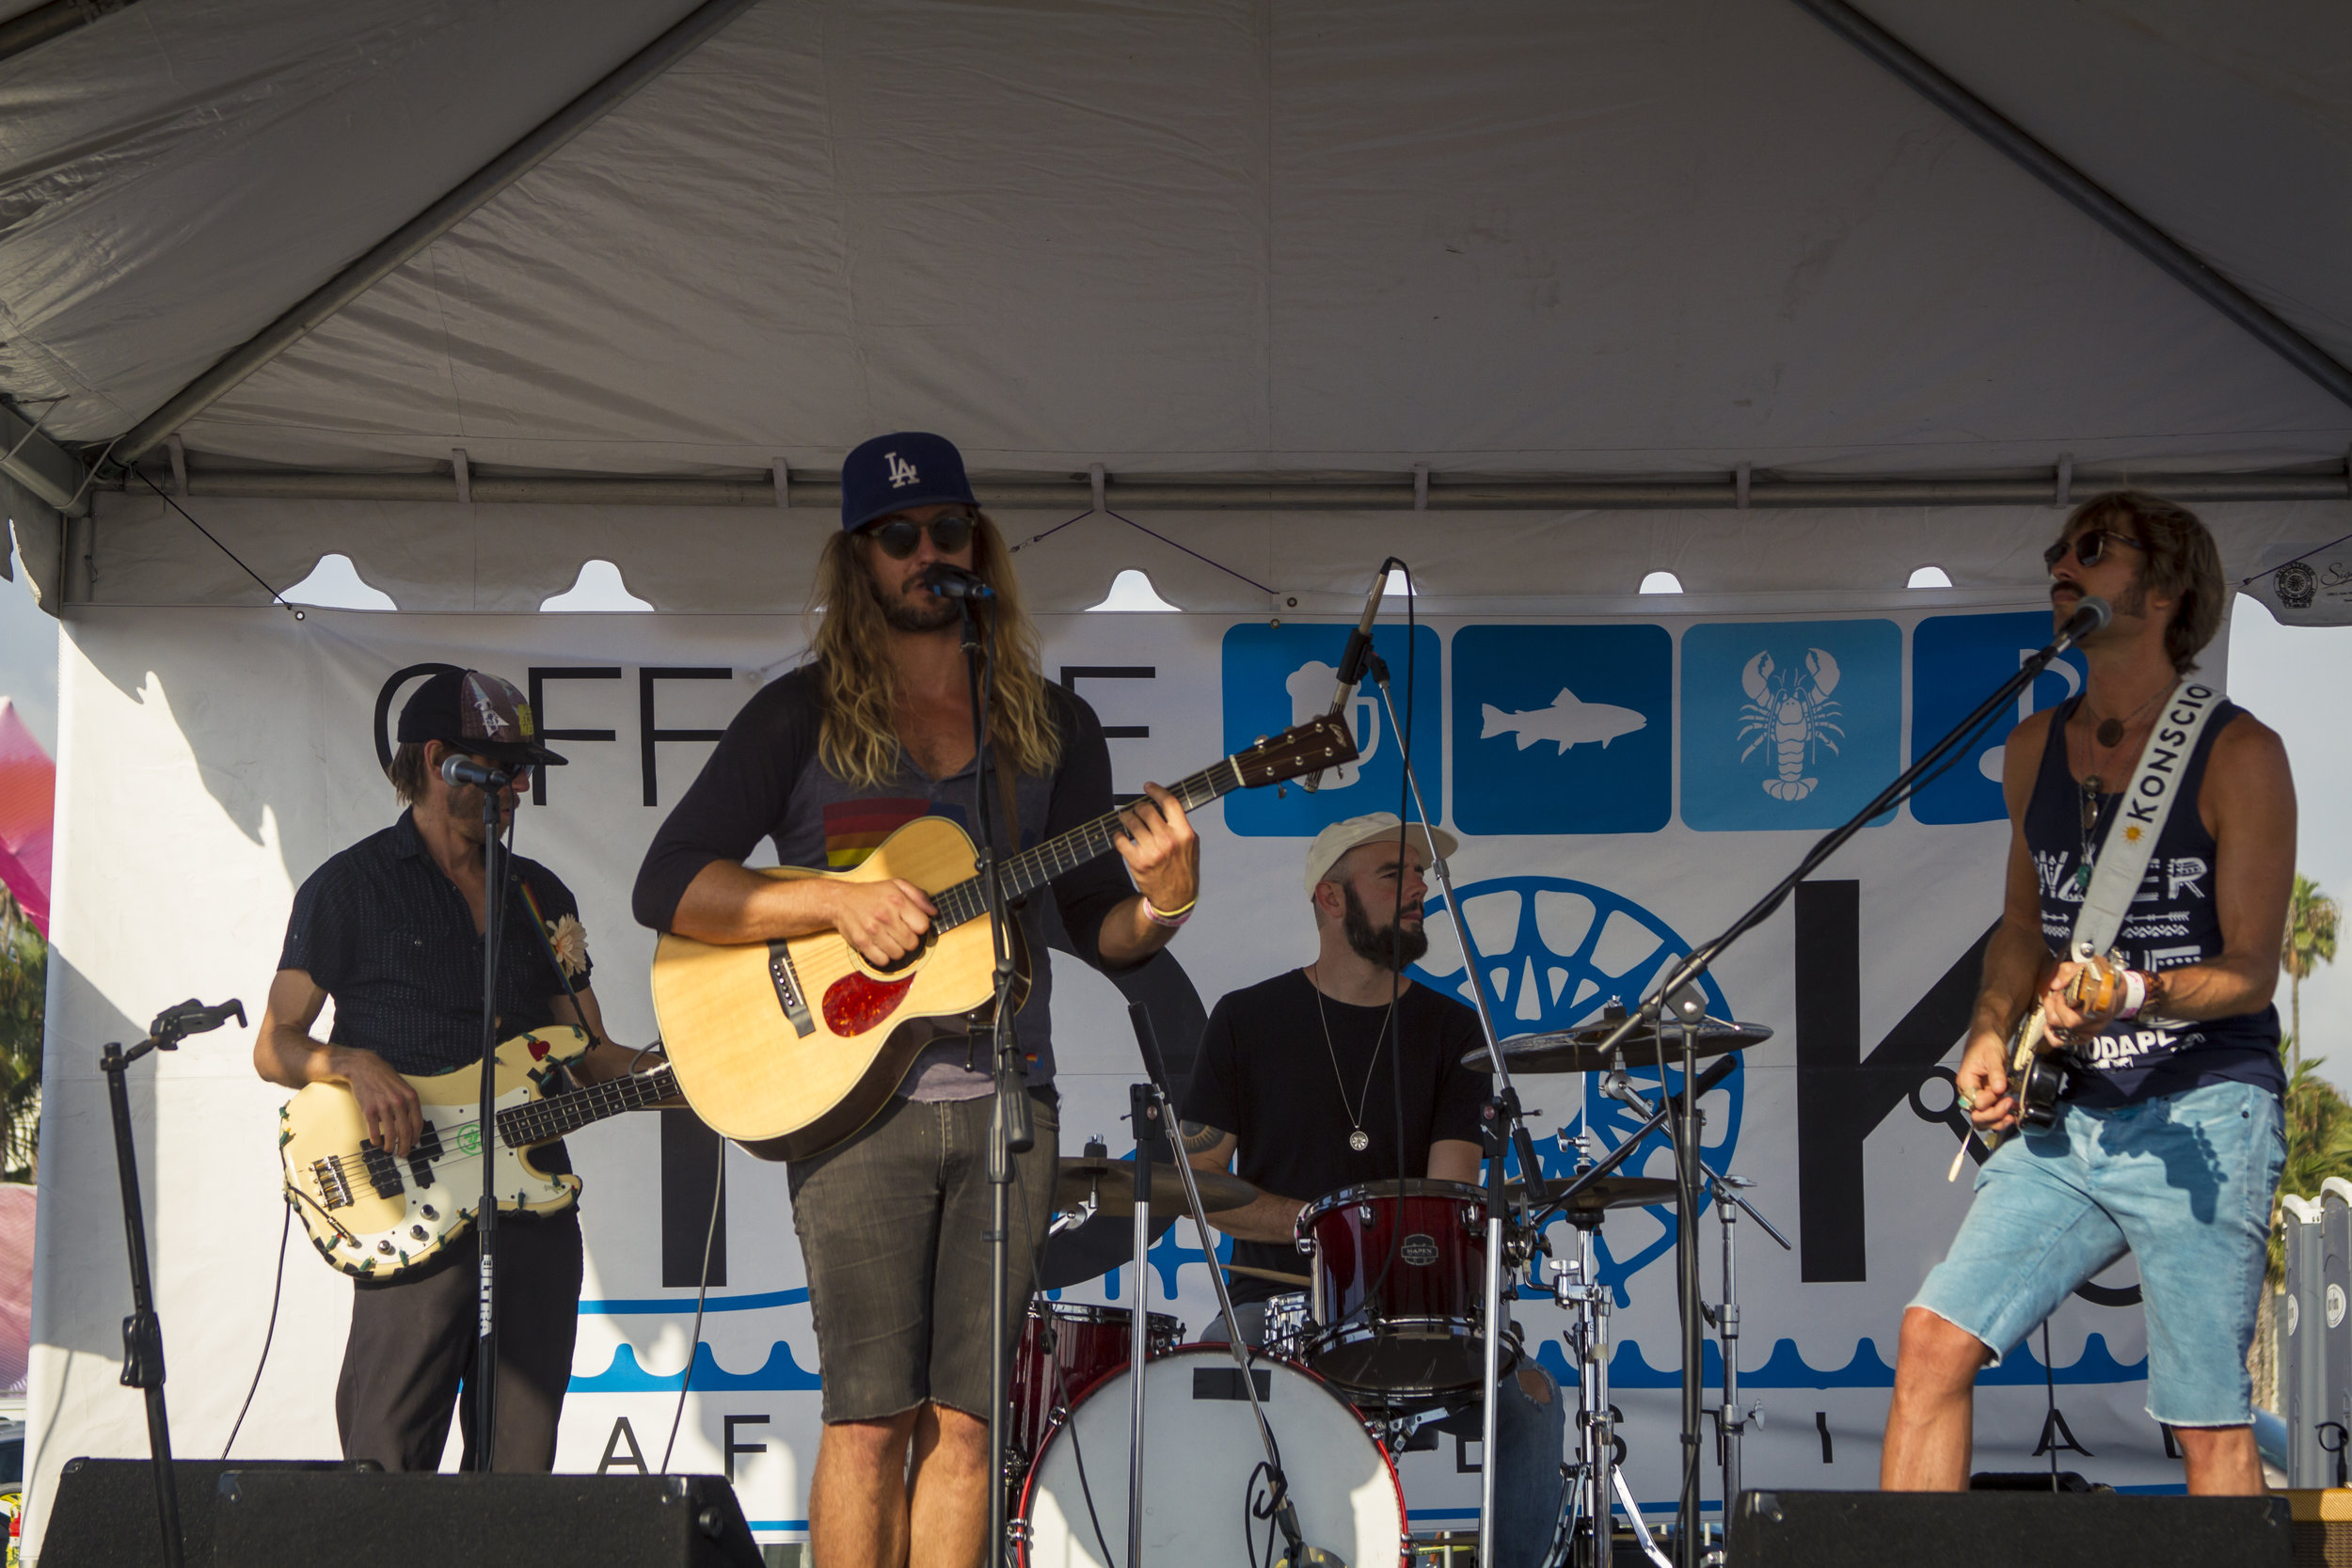 Local Venice band, Brightside, perform on stage. At Off the Hook Seafood Festival. Oct. 6, 2018. By Yasser Marte.